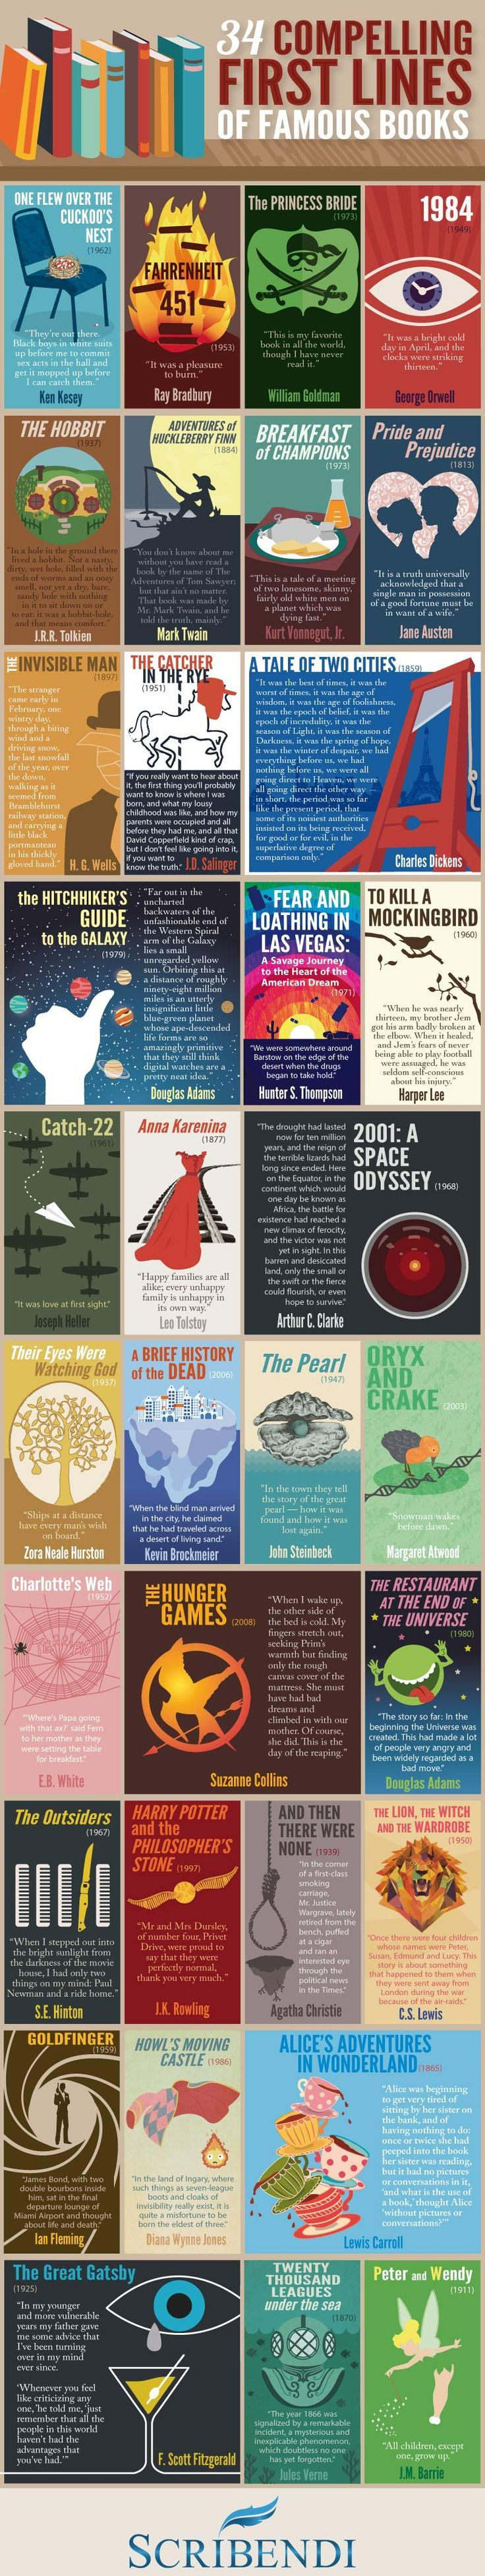 34 Compelling First Lines of Famous Books #infographic #Books